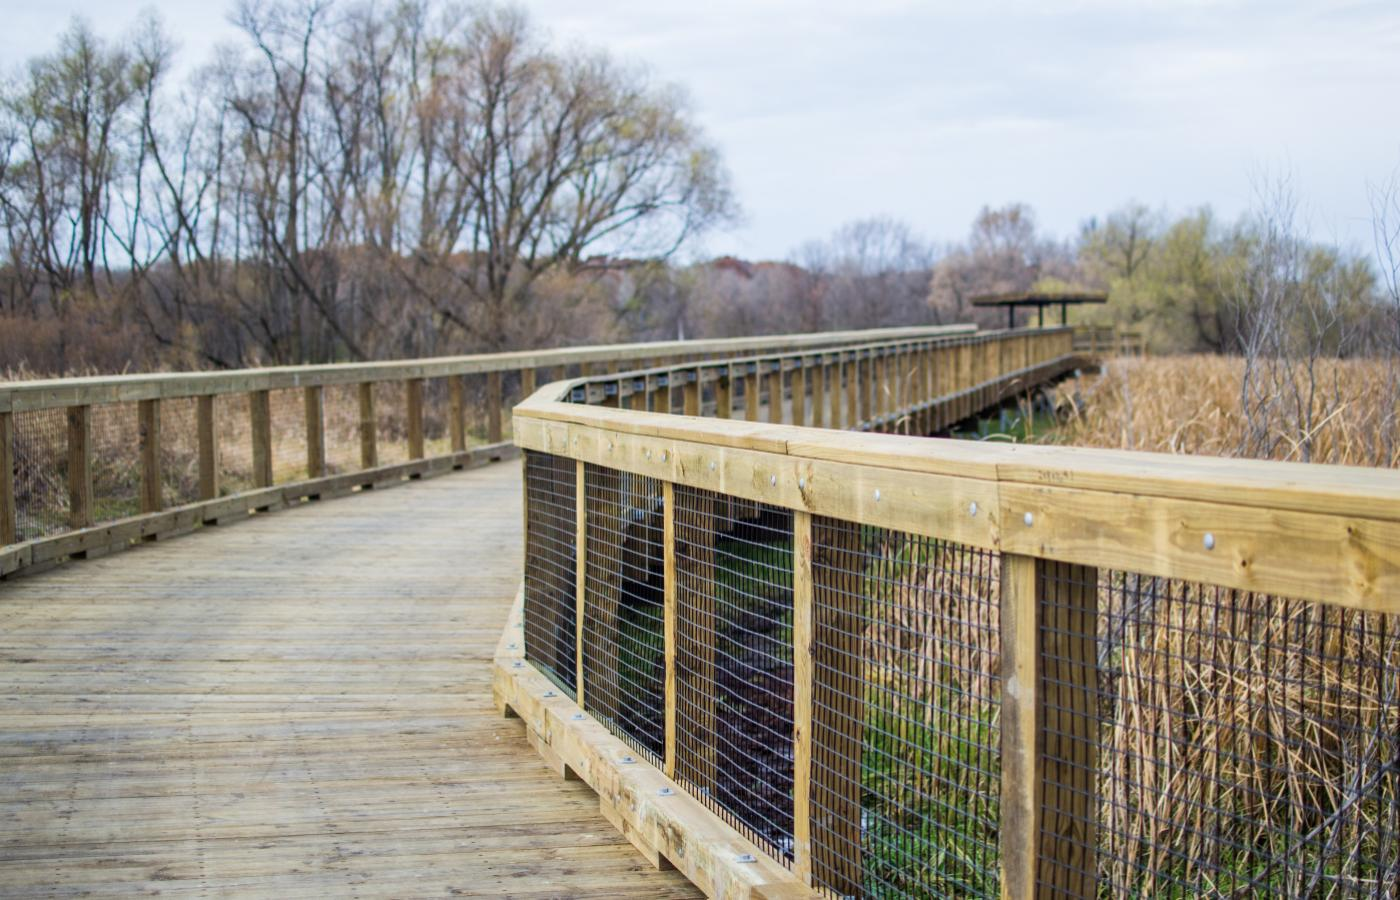 Northwest Greenway Boardwalk - 2